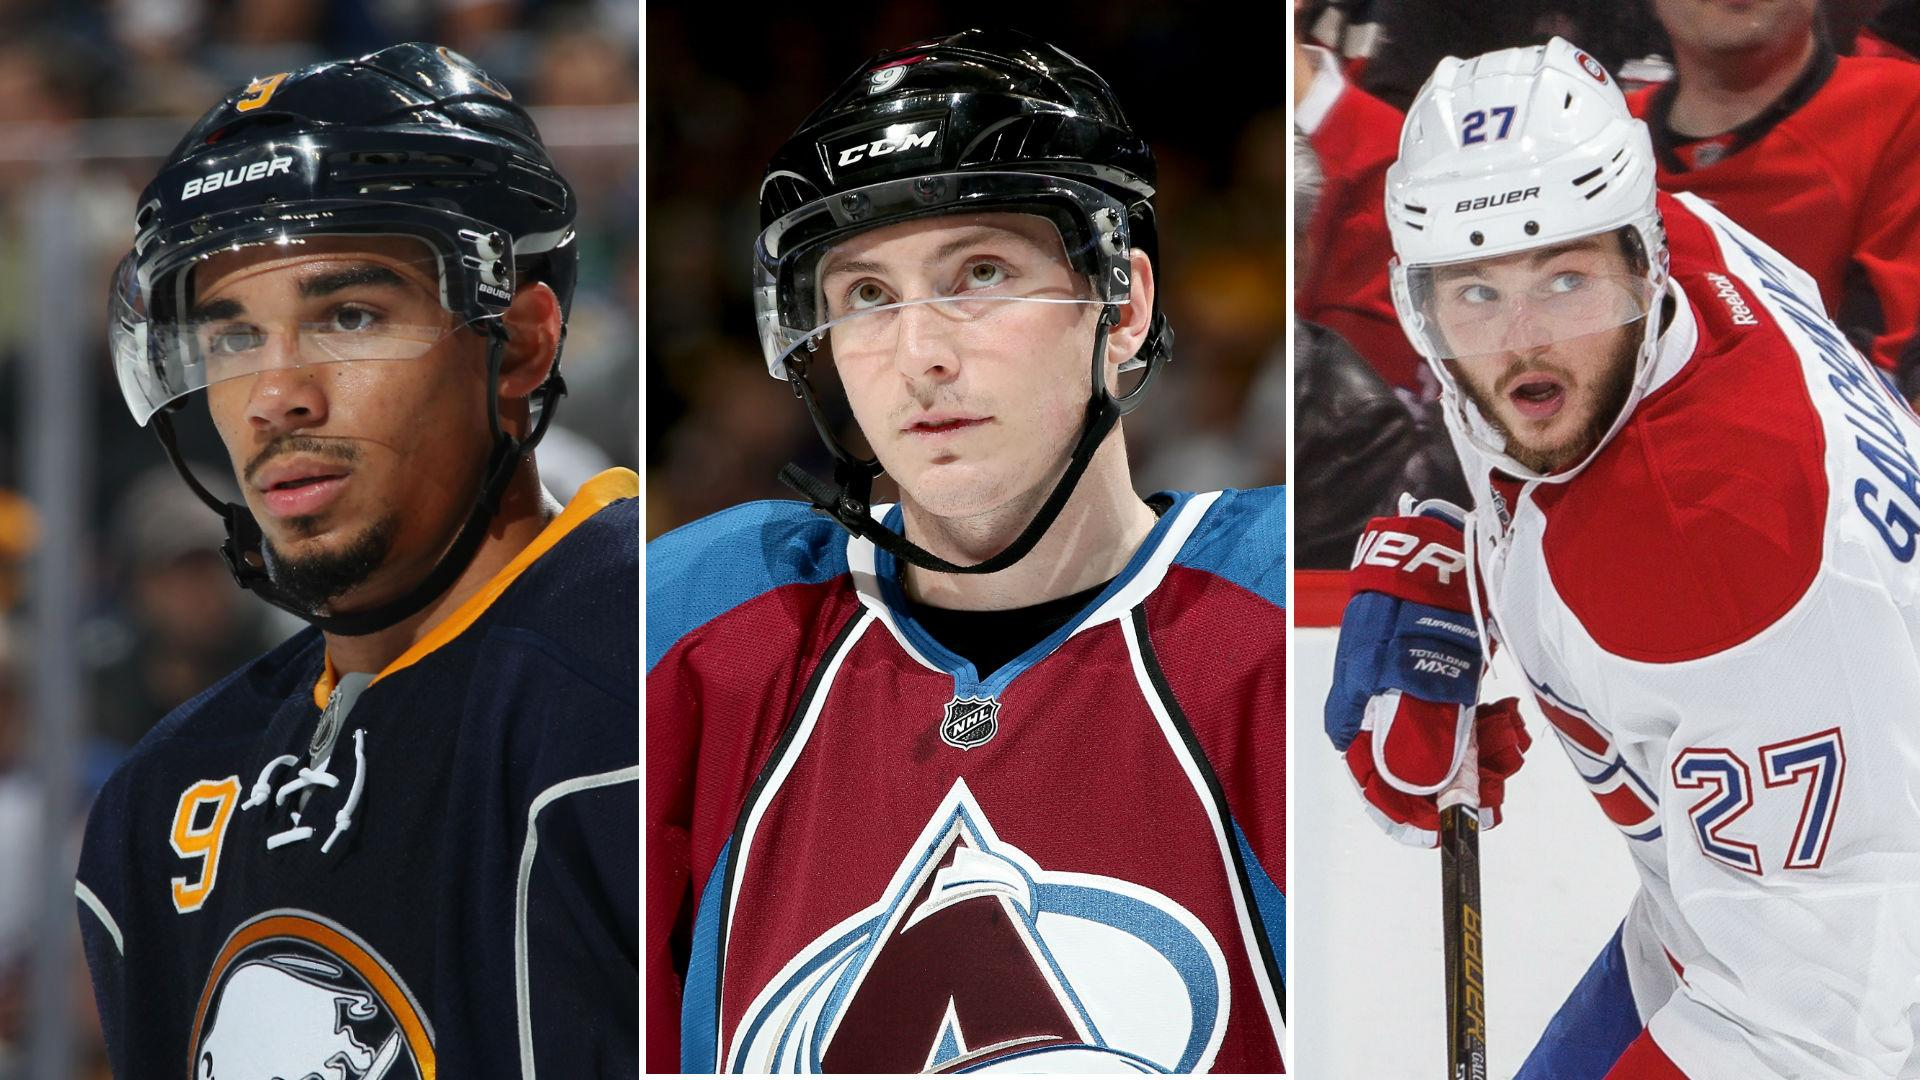 NHL trade tracker: Rumors, reported deals during free agency